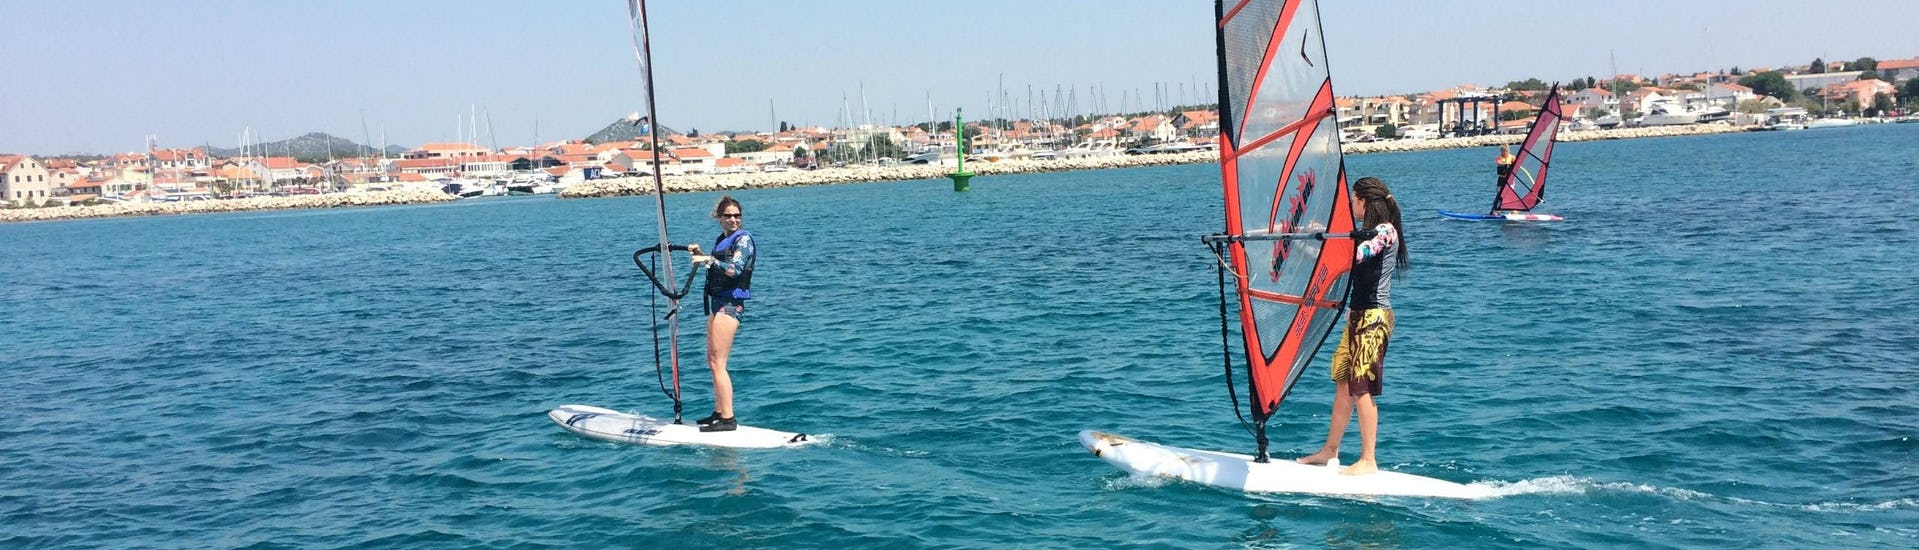 Private Windsurfing Lessons for All Ages - All Levels